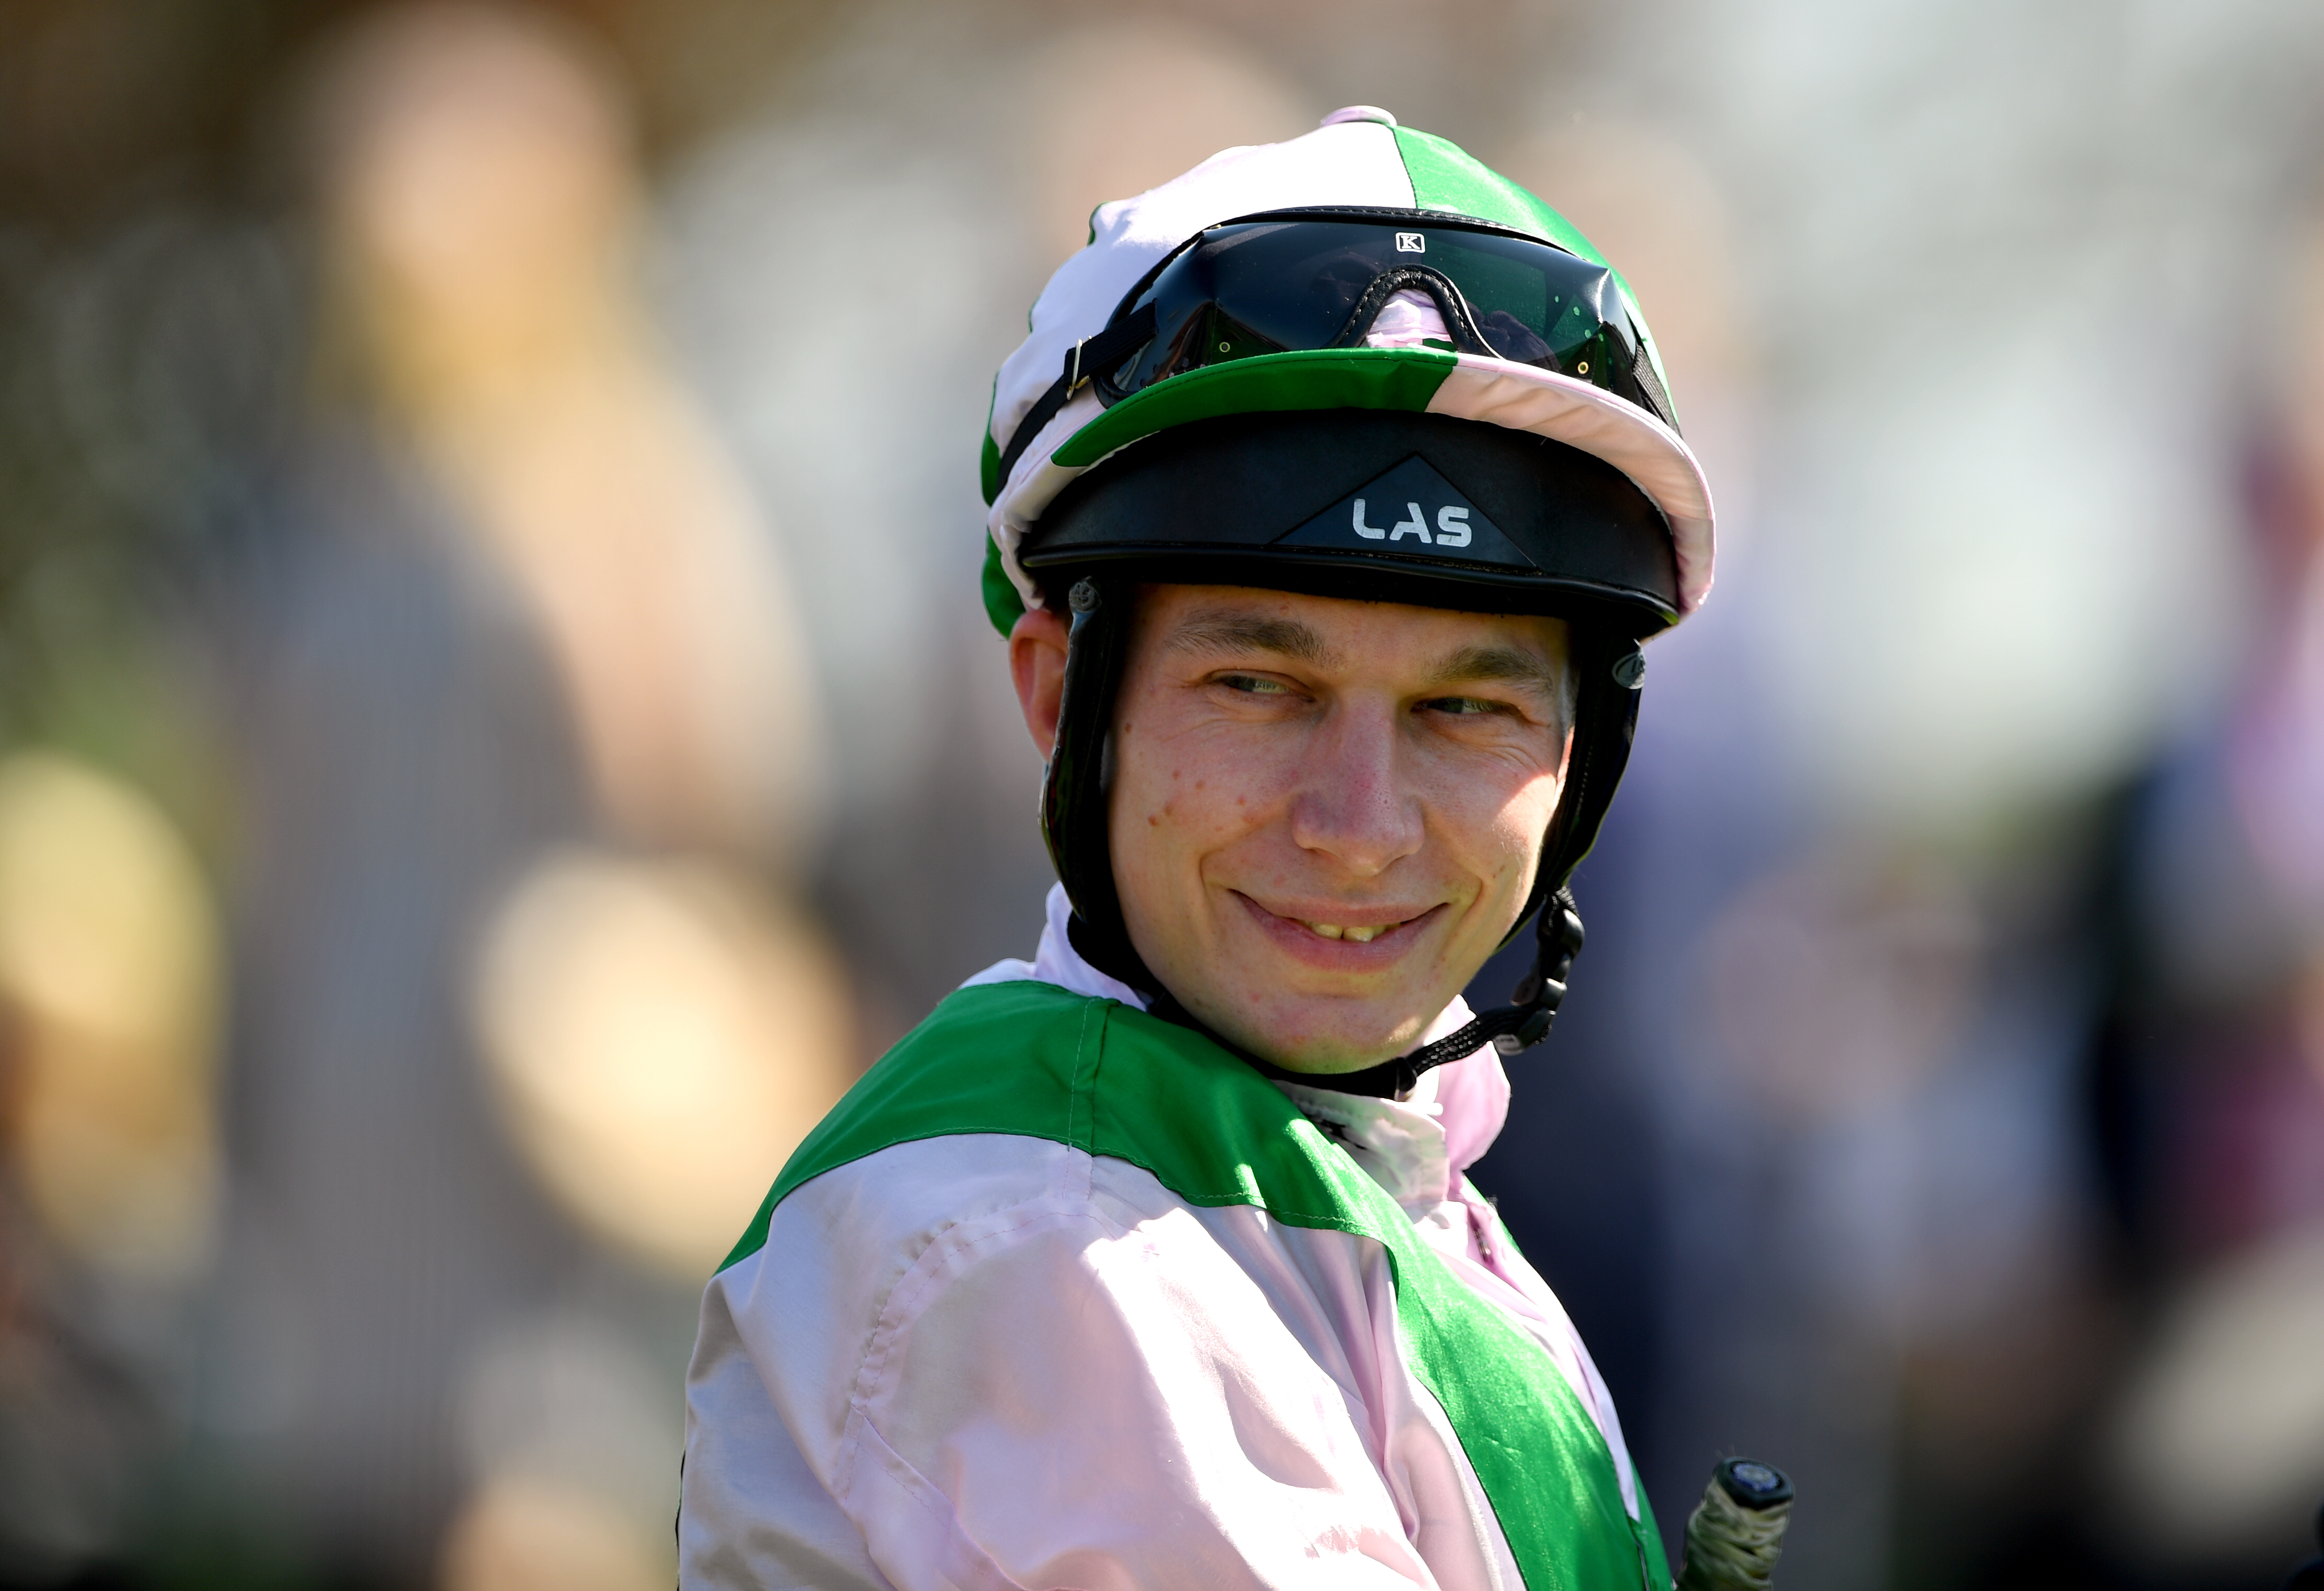 Luke Morris who enjoyed a double at Yarmouth on Wednesday (Joe Giddens/PA)